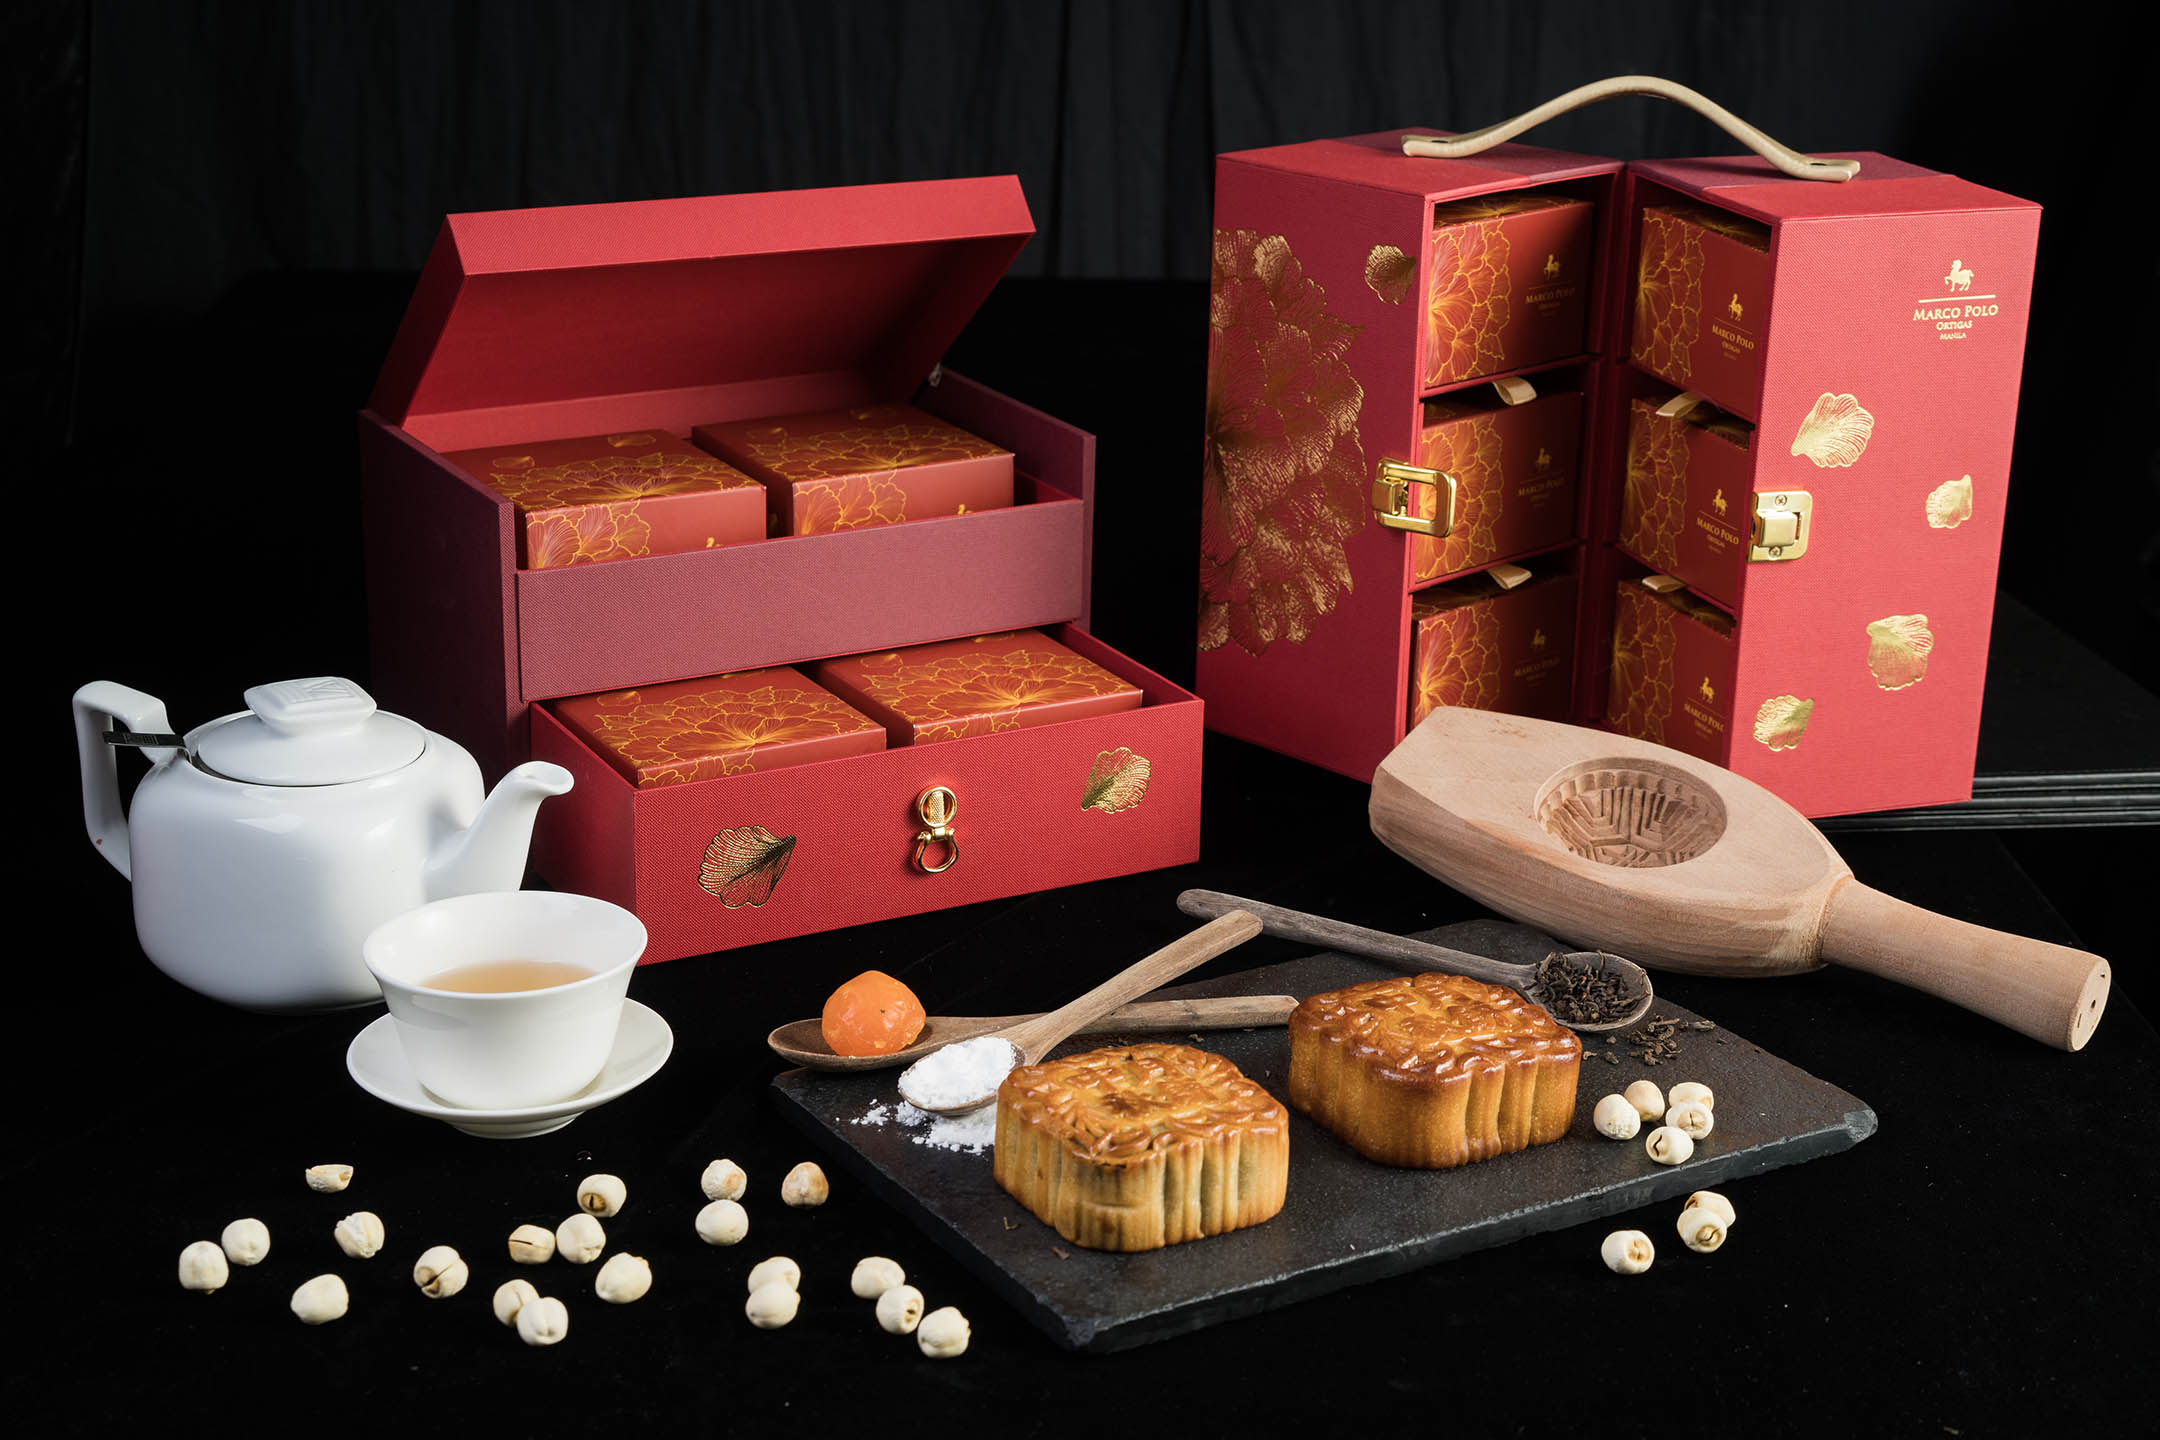 Mooncakes in gift sets of four pieces and six pieces